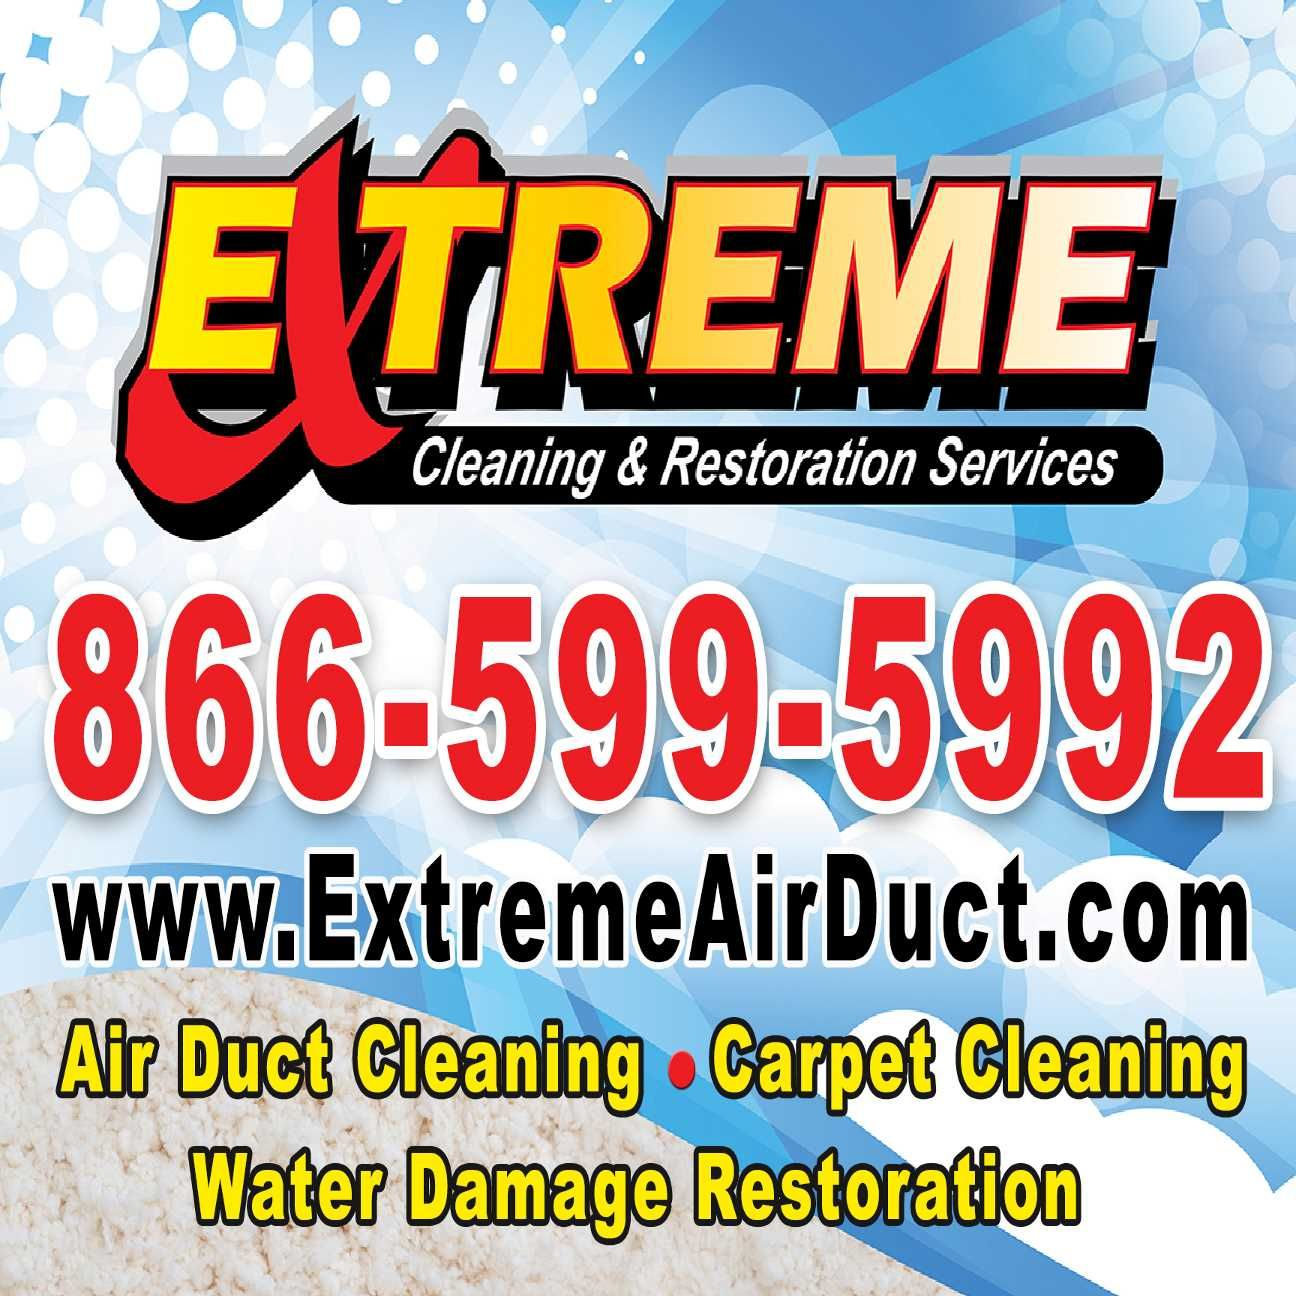 Pin by Extreme Air Duct Cleaning And on Air Duct Cleaning